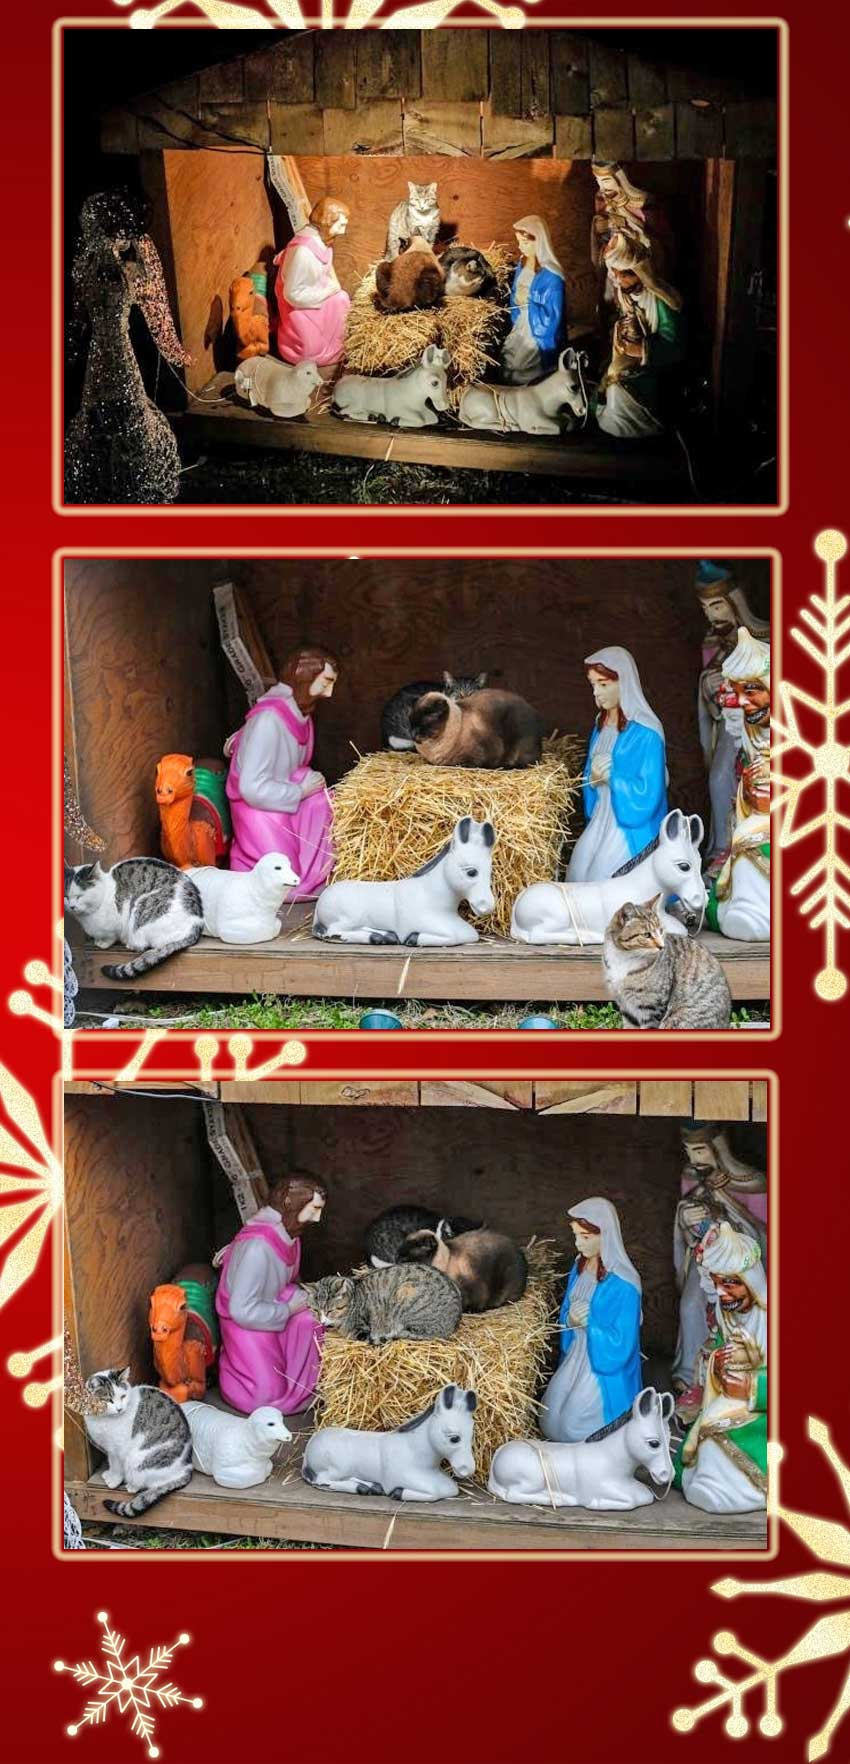 feral cats take over nativity scene